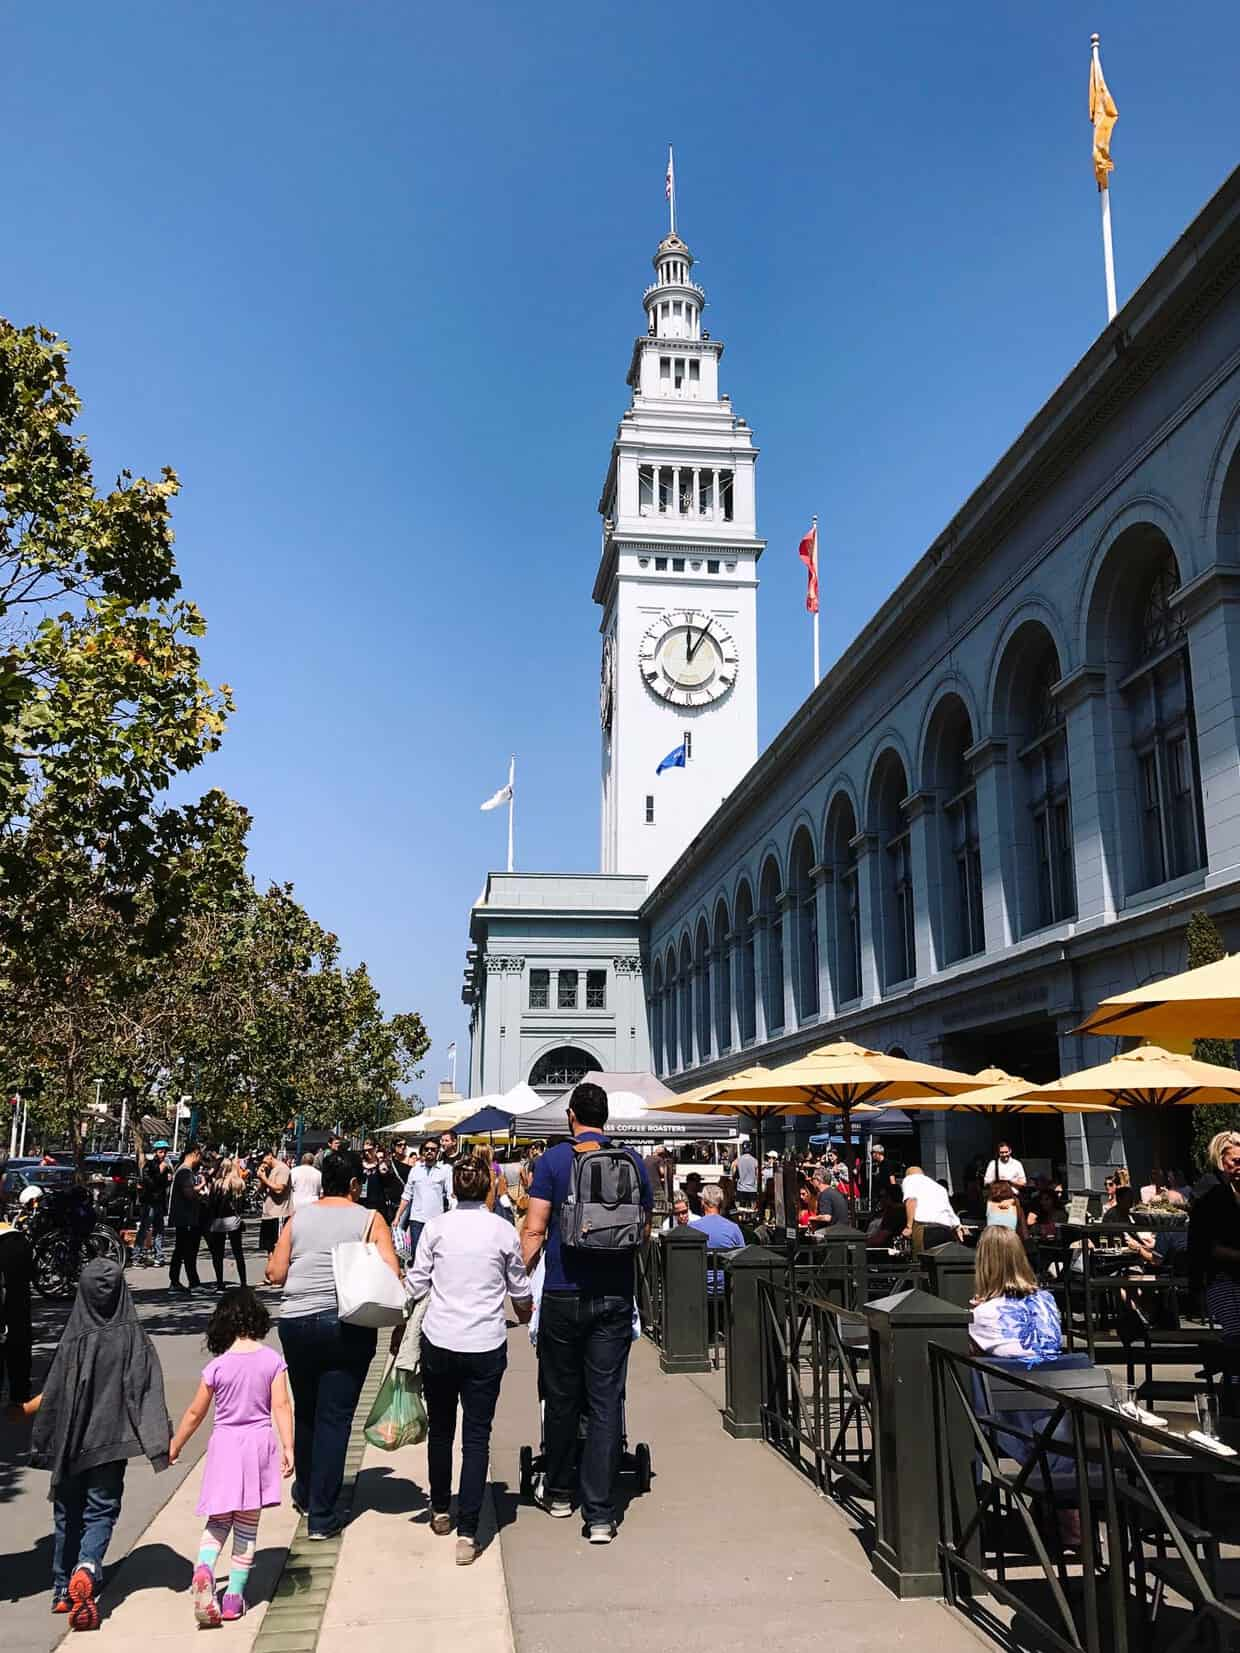 The Ferry Building in San Francisco is home to one of the best farmer's markets in California.